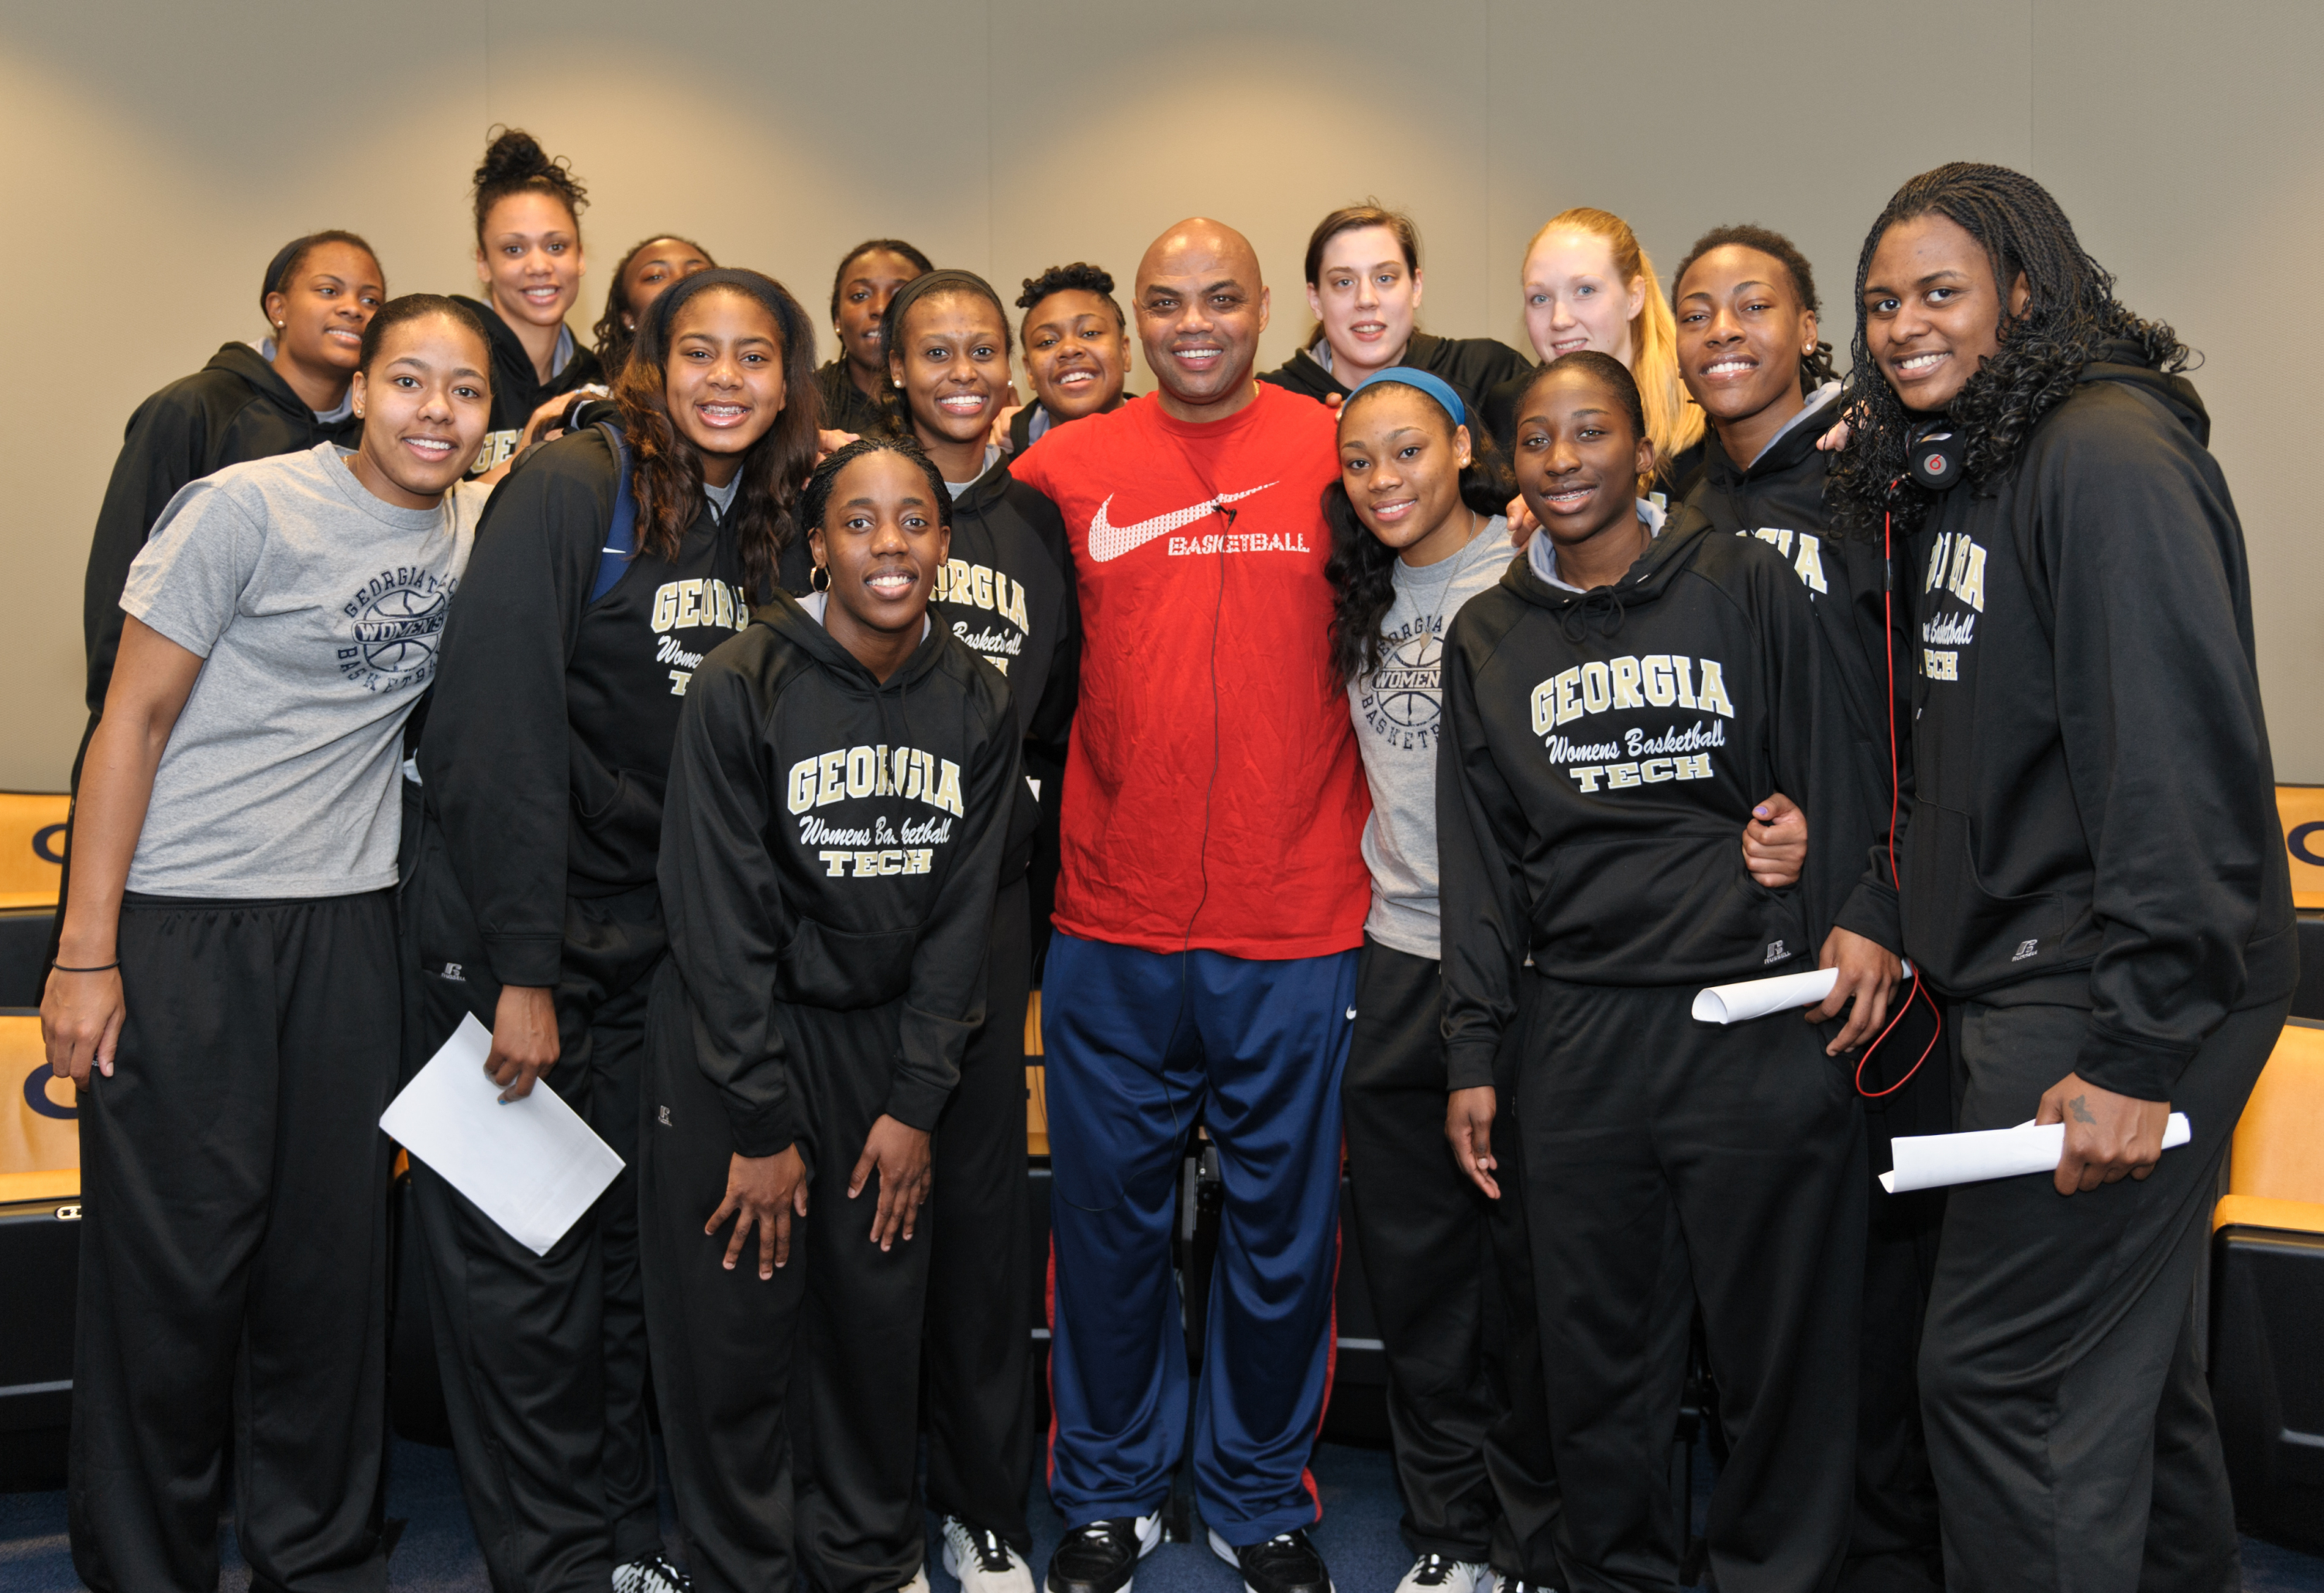 NBA Hall of Famer Charles Barkley and the Georgia Tech Women's Basketball team.